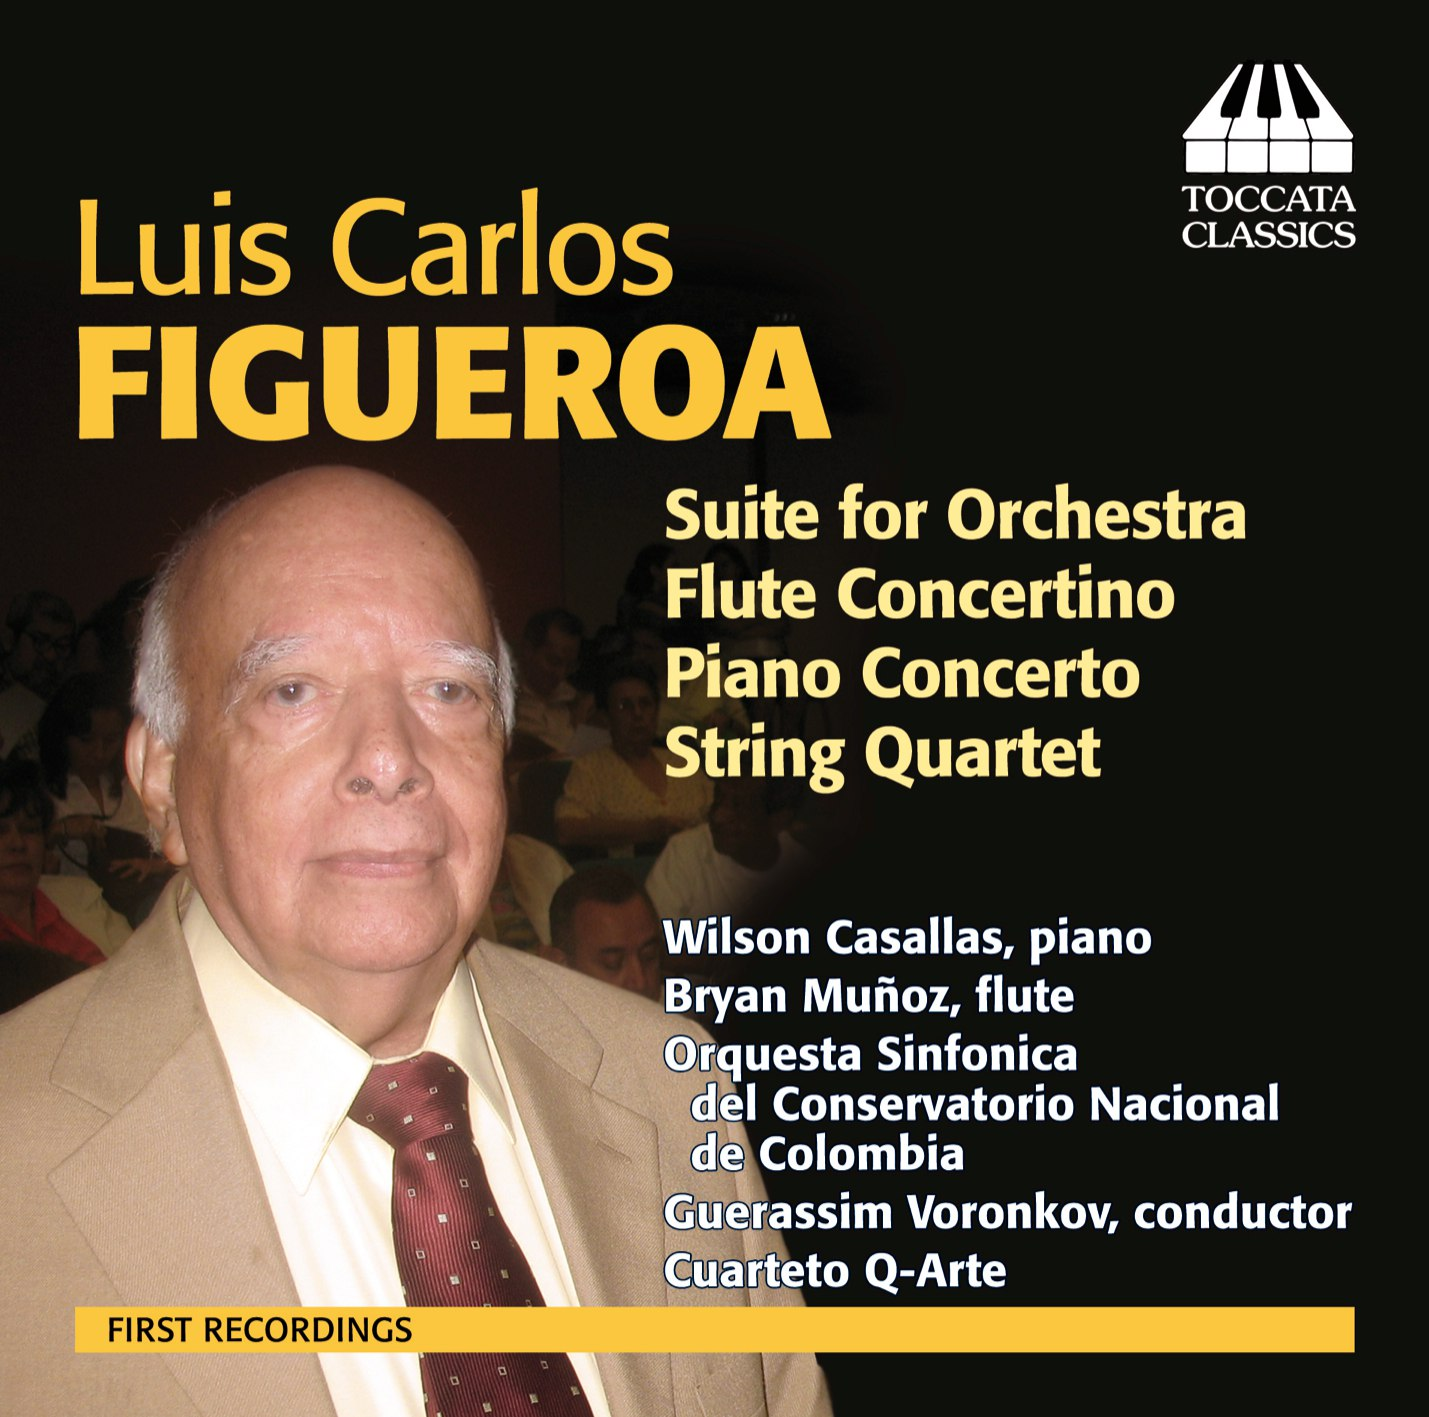 Luis Carlos Figueroa: Orchestral and Chamber Music